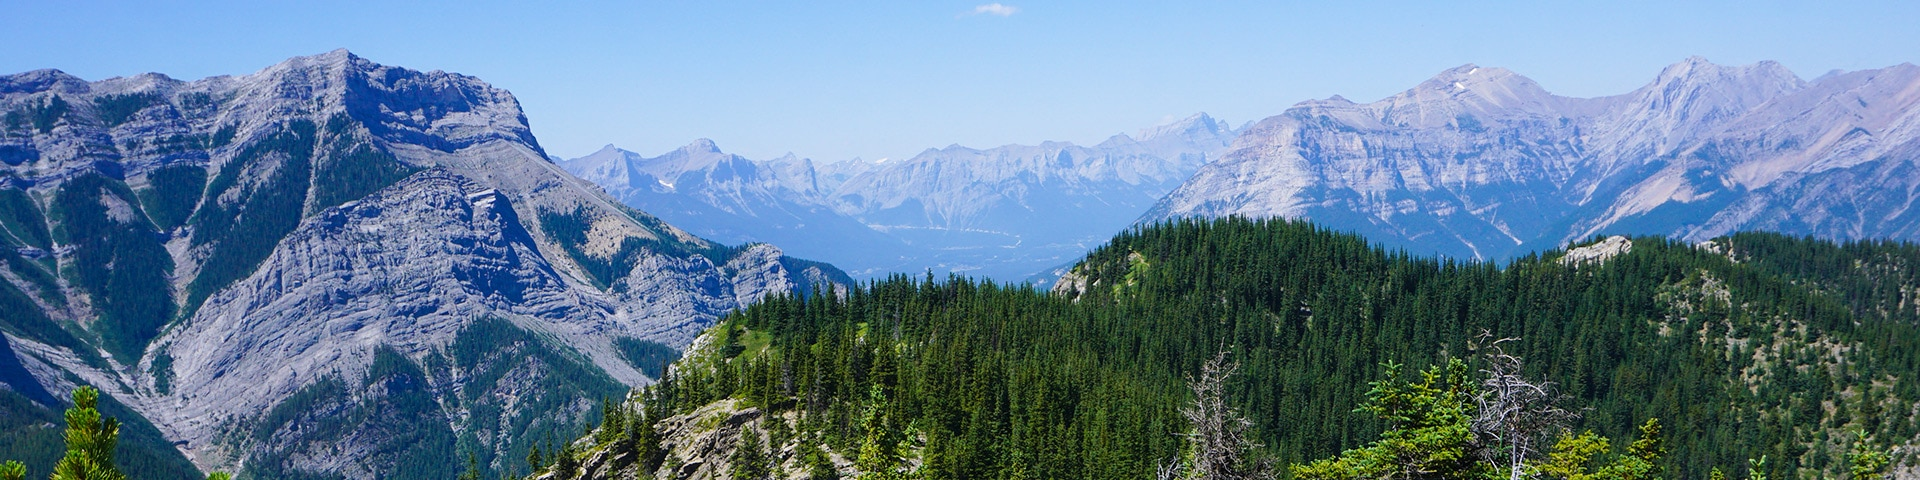 Panorama from the Heart Mountain Horseshoe hike in Canmore, the Canadian Rockies